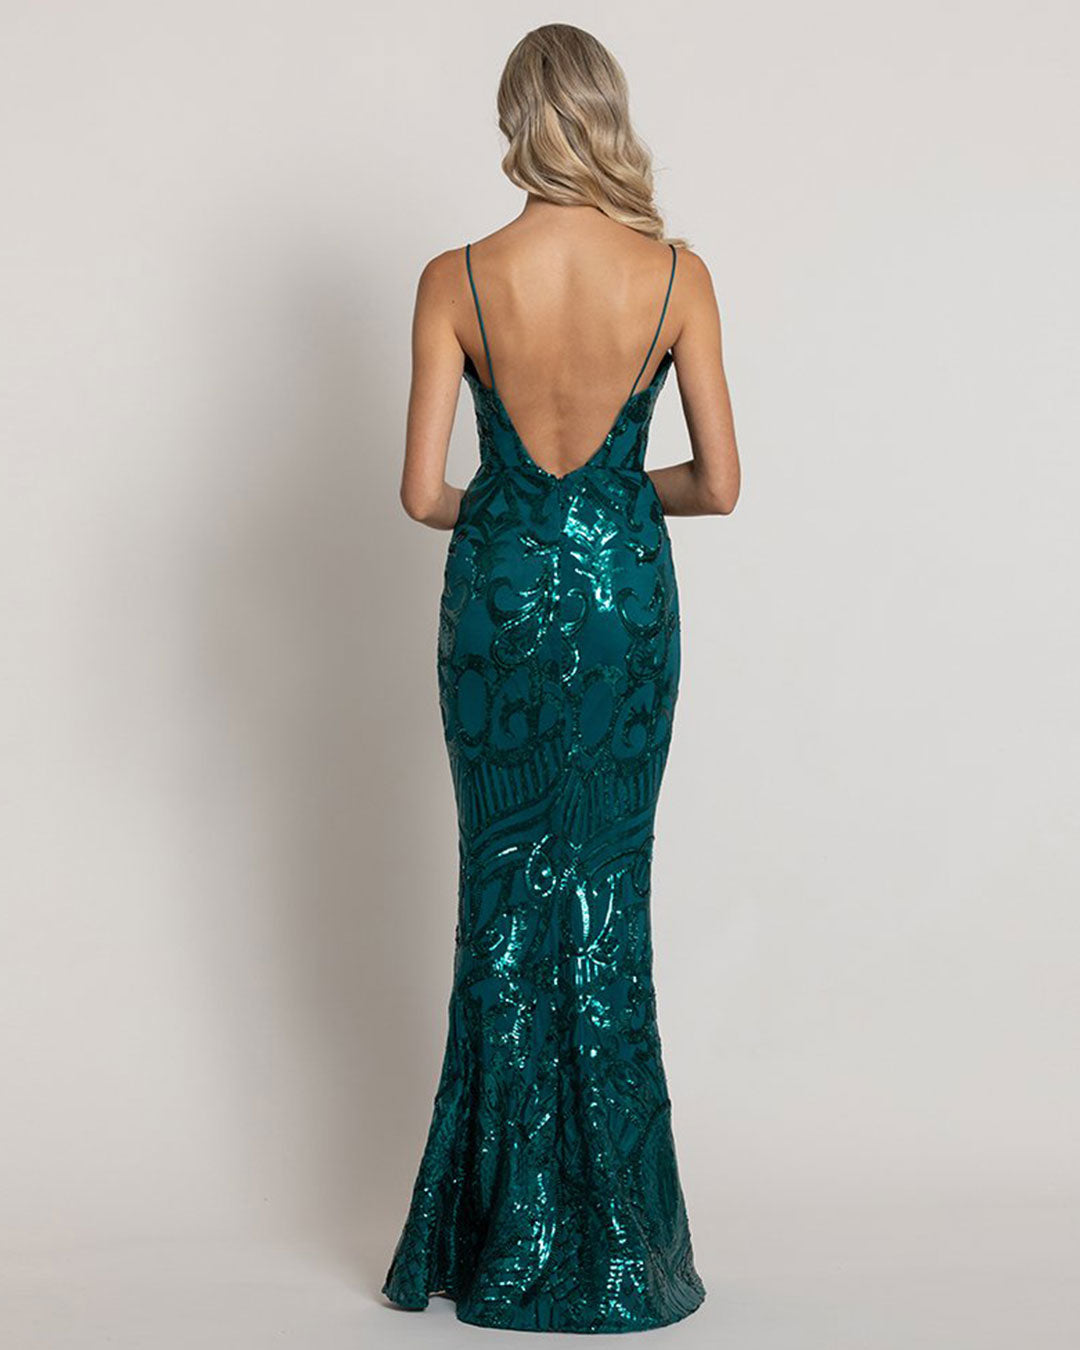 Eisley Pattern Sequin Gown - Emerald Green